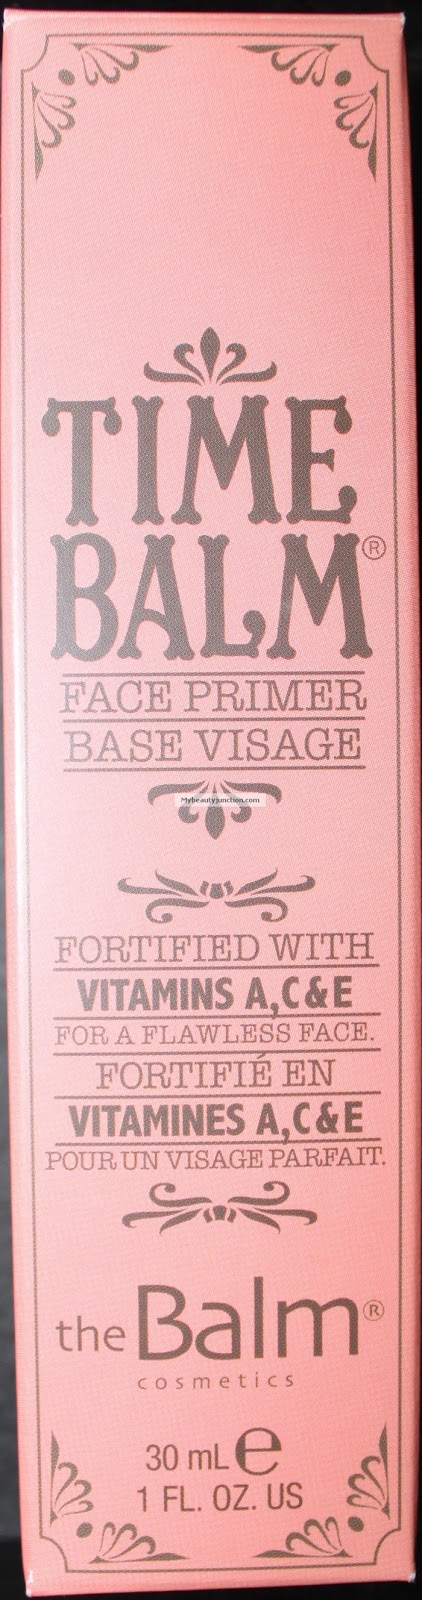 TheBalm's Time Balm Primer review